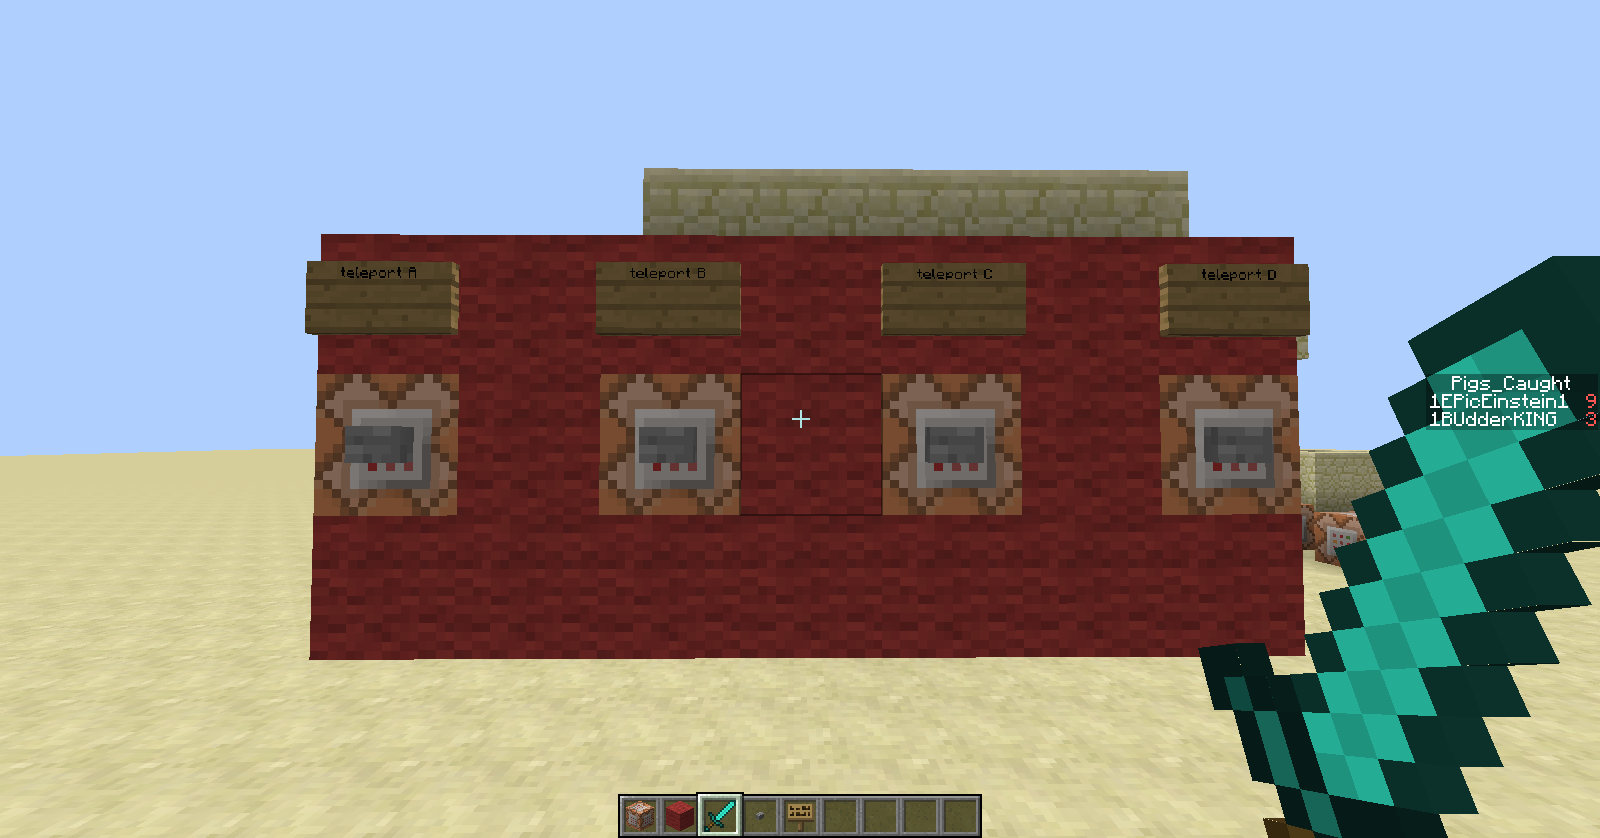 command to teleport in minecraft